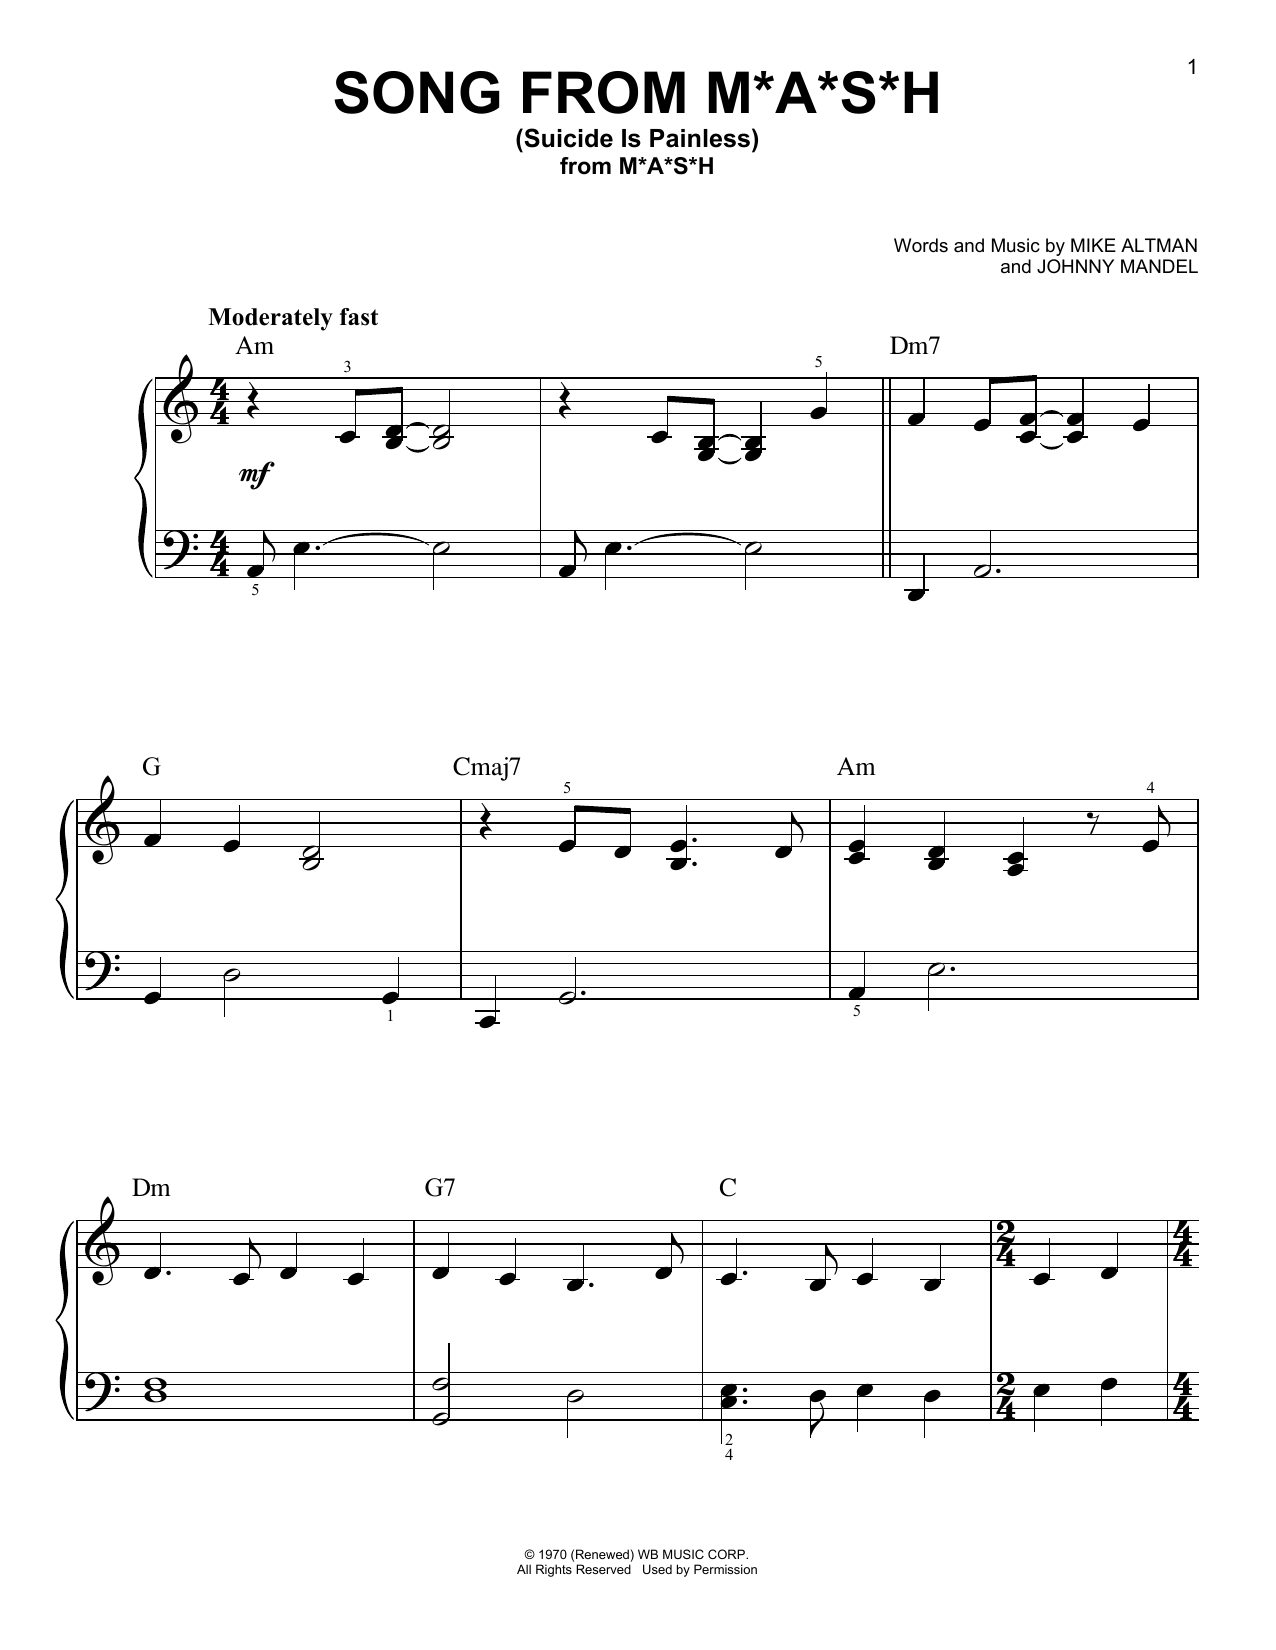 Mike Altman and Johnny Mandel Song From M*A*S*H (Suicide Is Painless) sheet music notes and chords. Download Printable PDF.